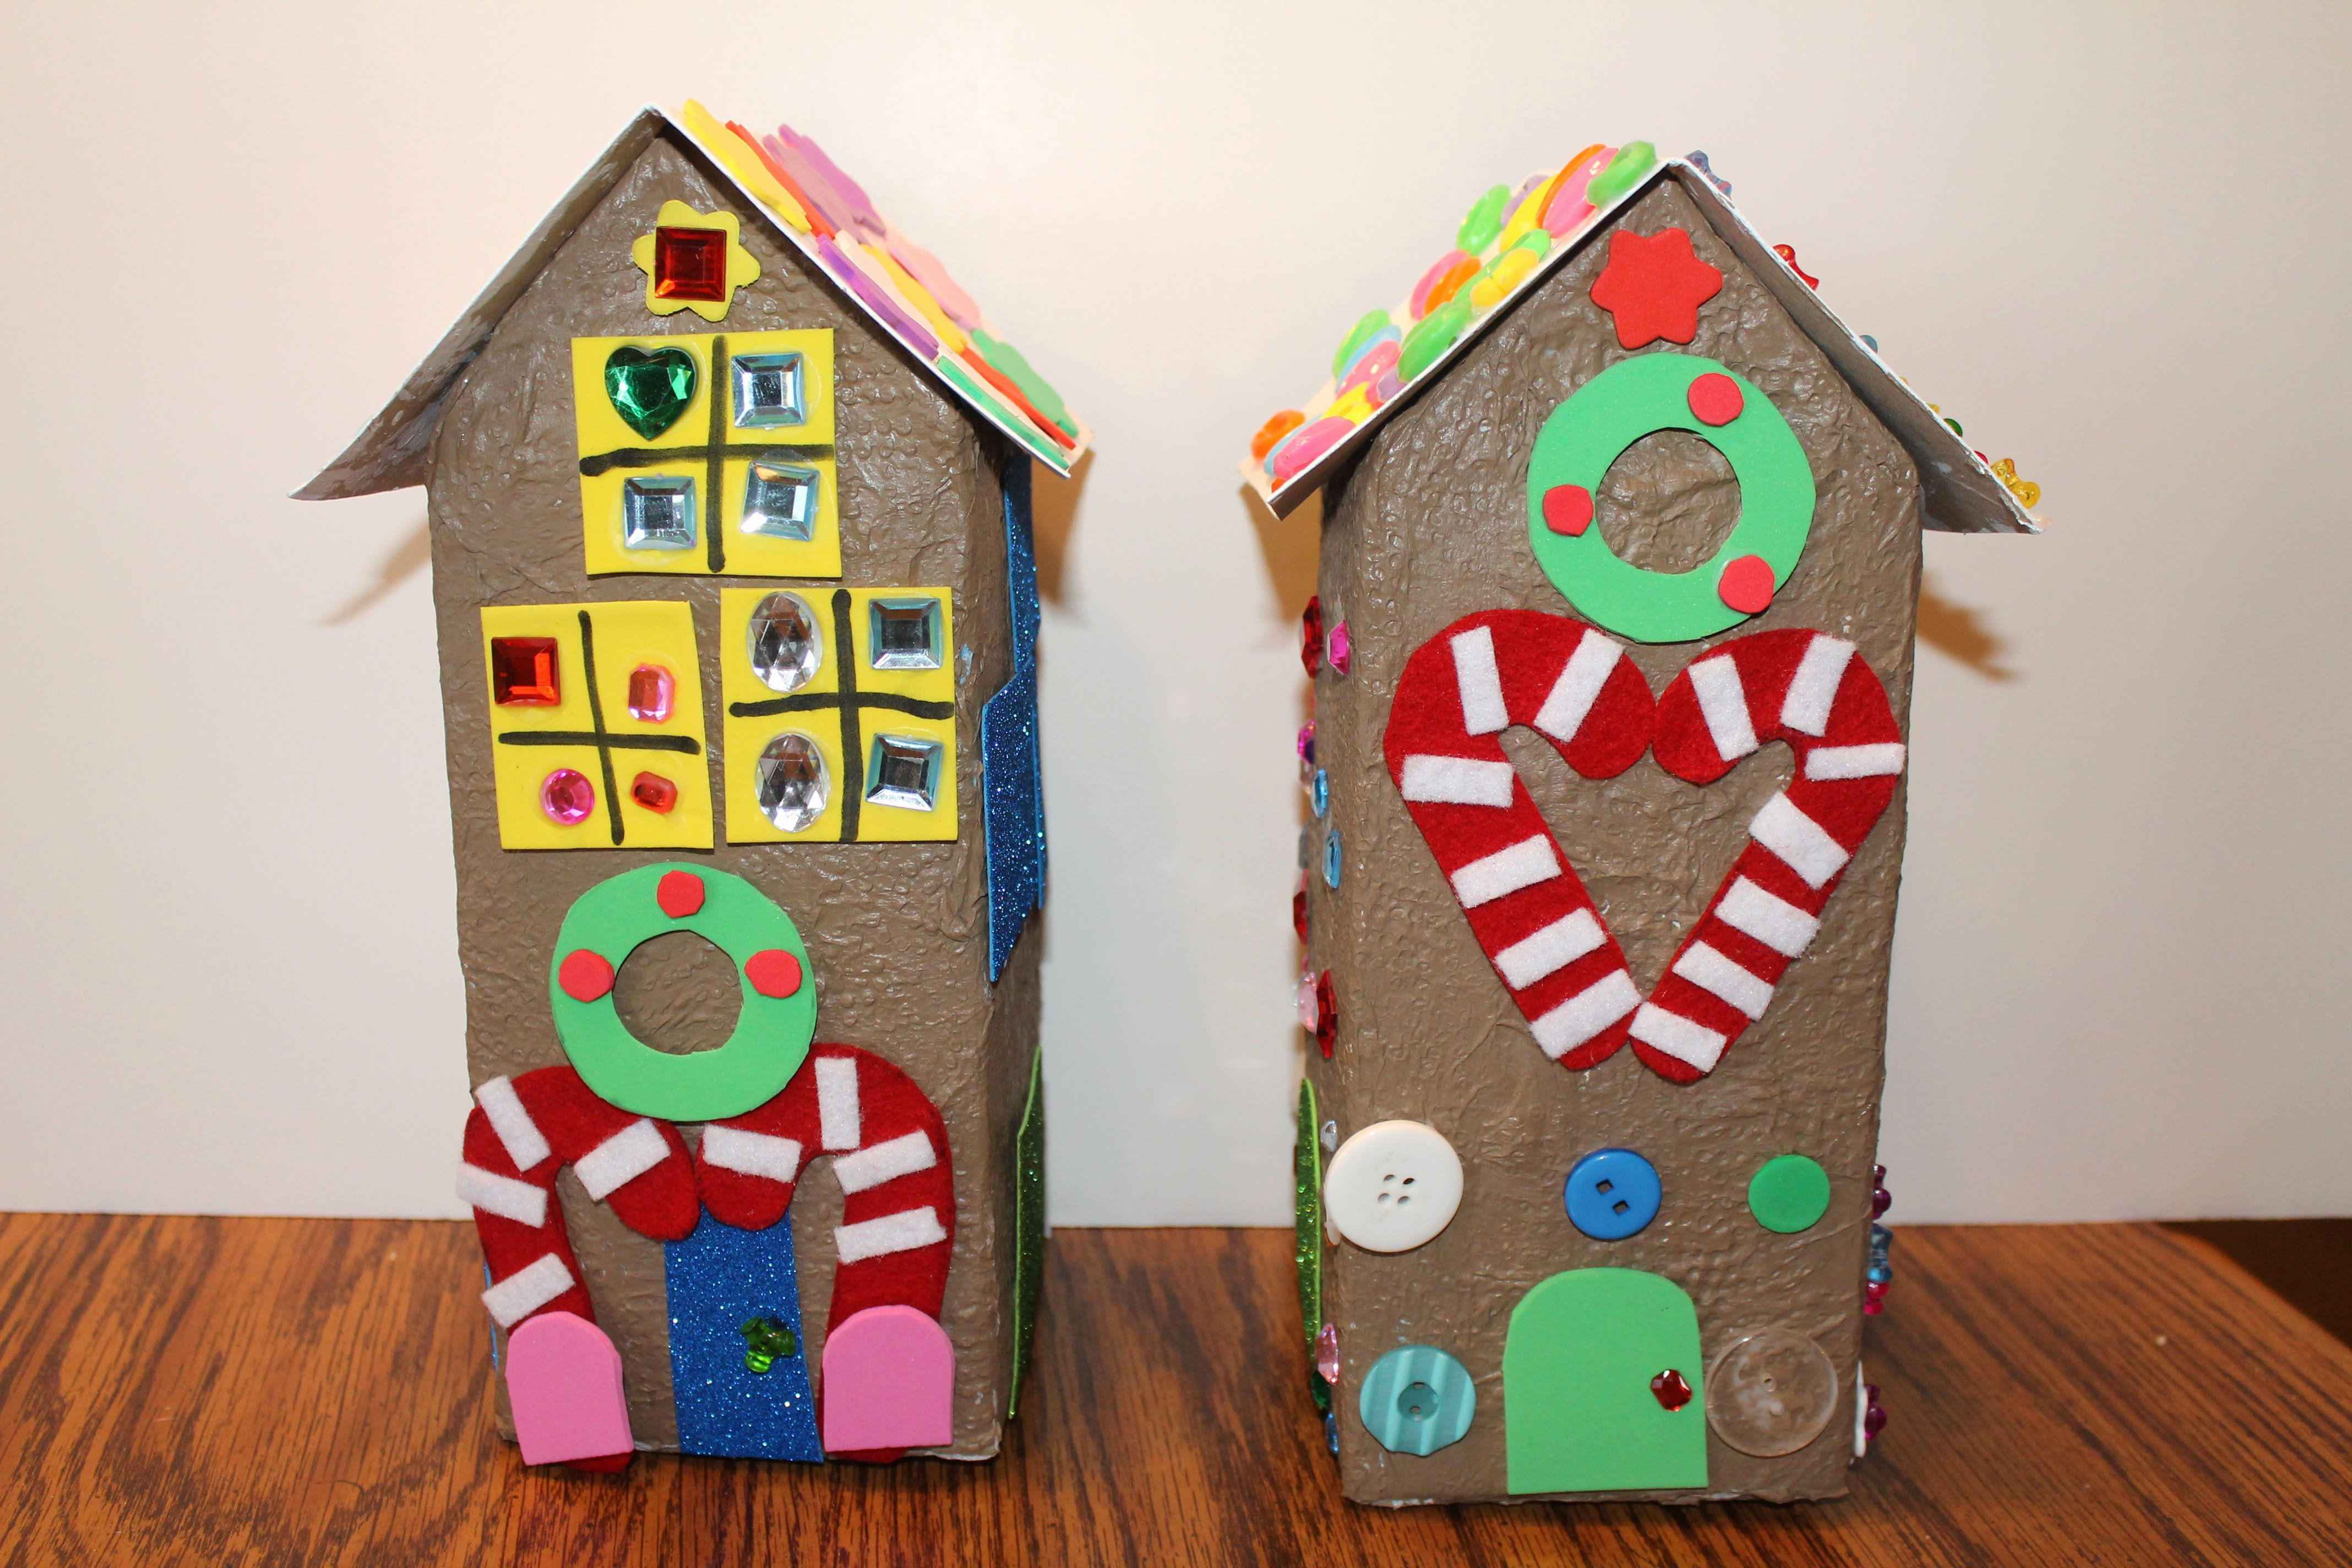 Cardboard Gingerbread House New Cardboard Gingerbread House – the Project Place